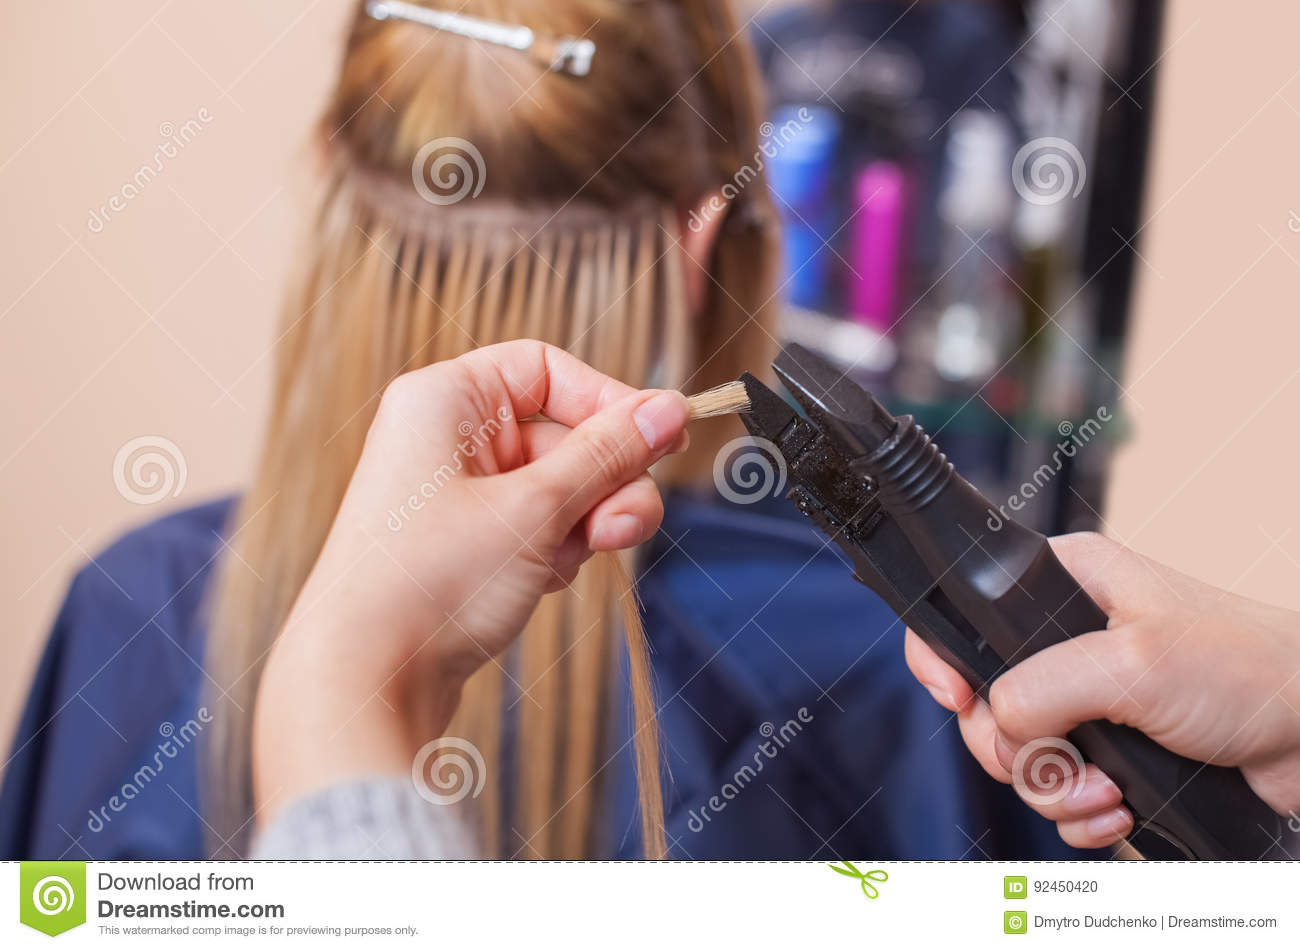 The Hairdresser Does Hair Extensions To A Young Girl A Blonde In A